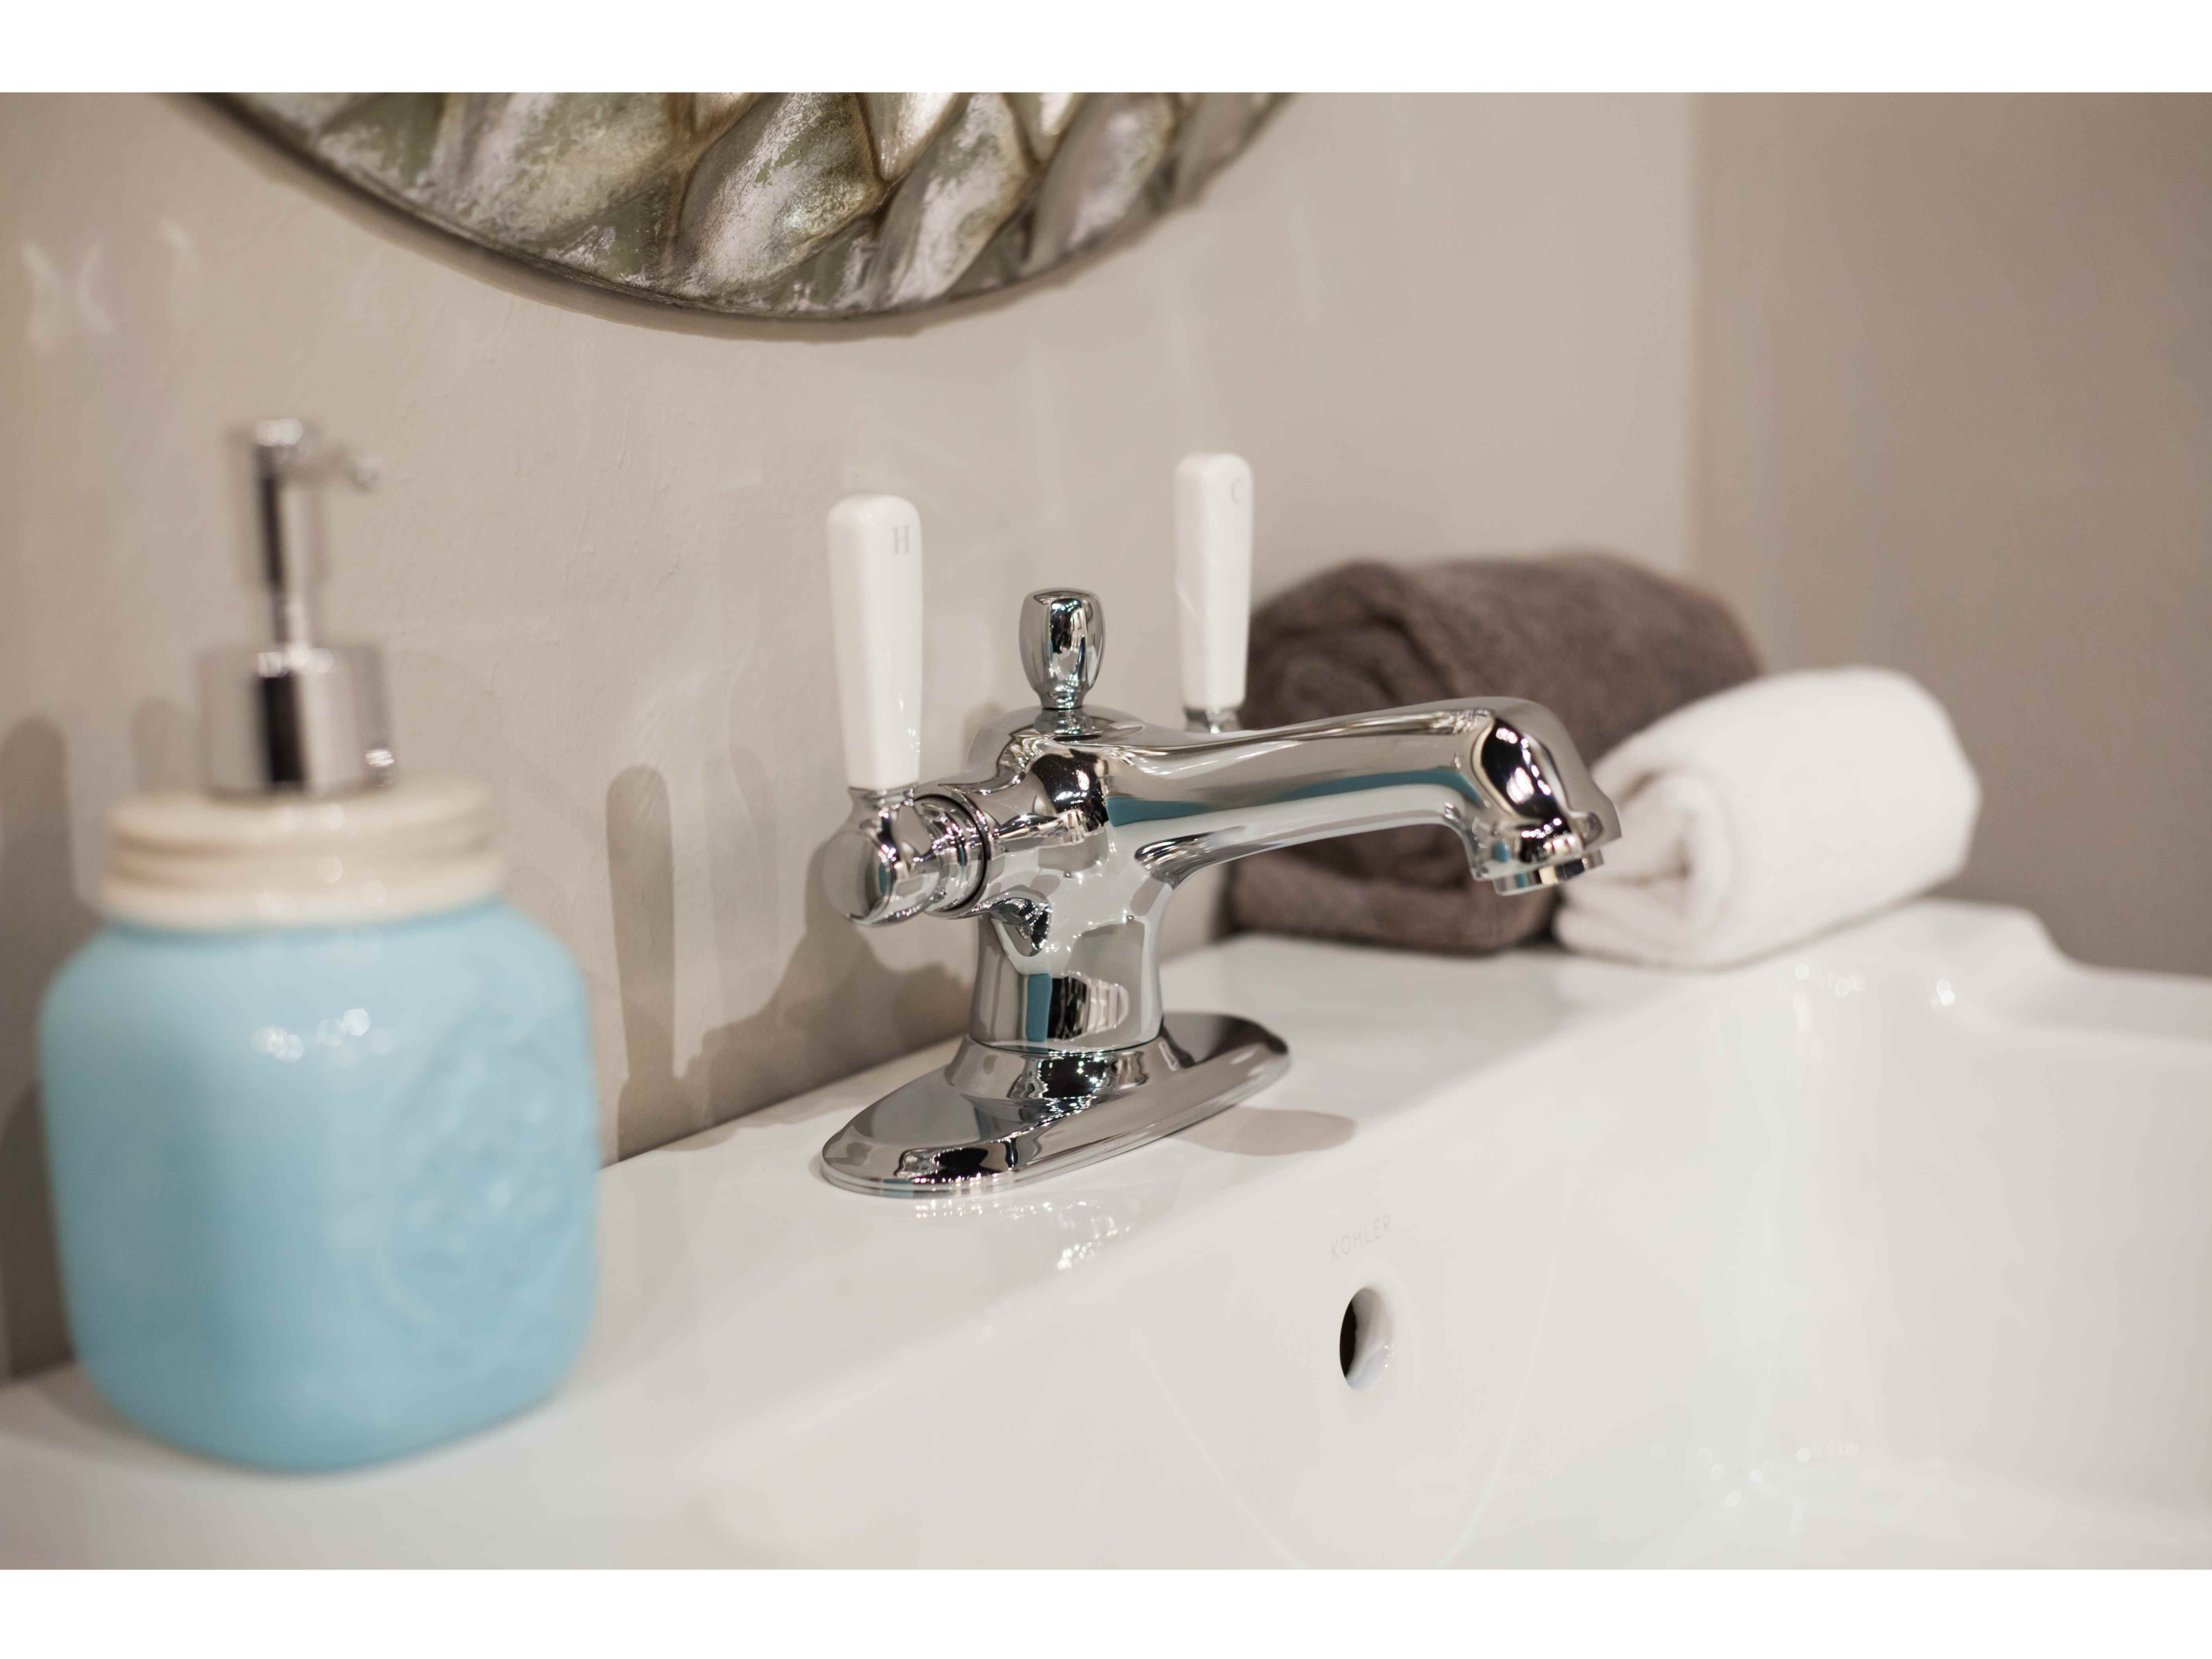 KOHLER Kitchen & Bathroom Products At The Bath & Kitchen Showplace In Conroe, TX